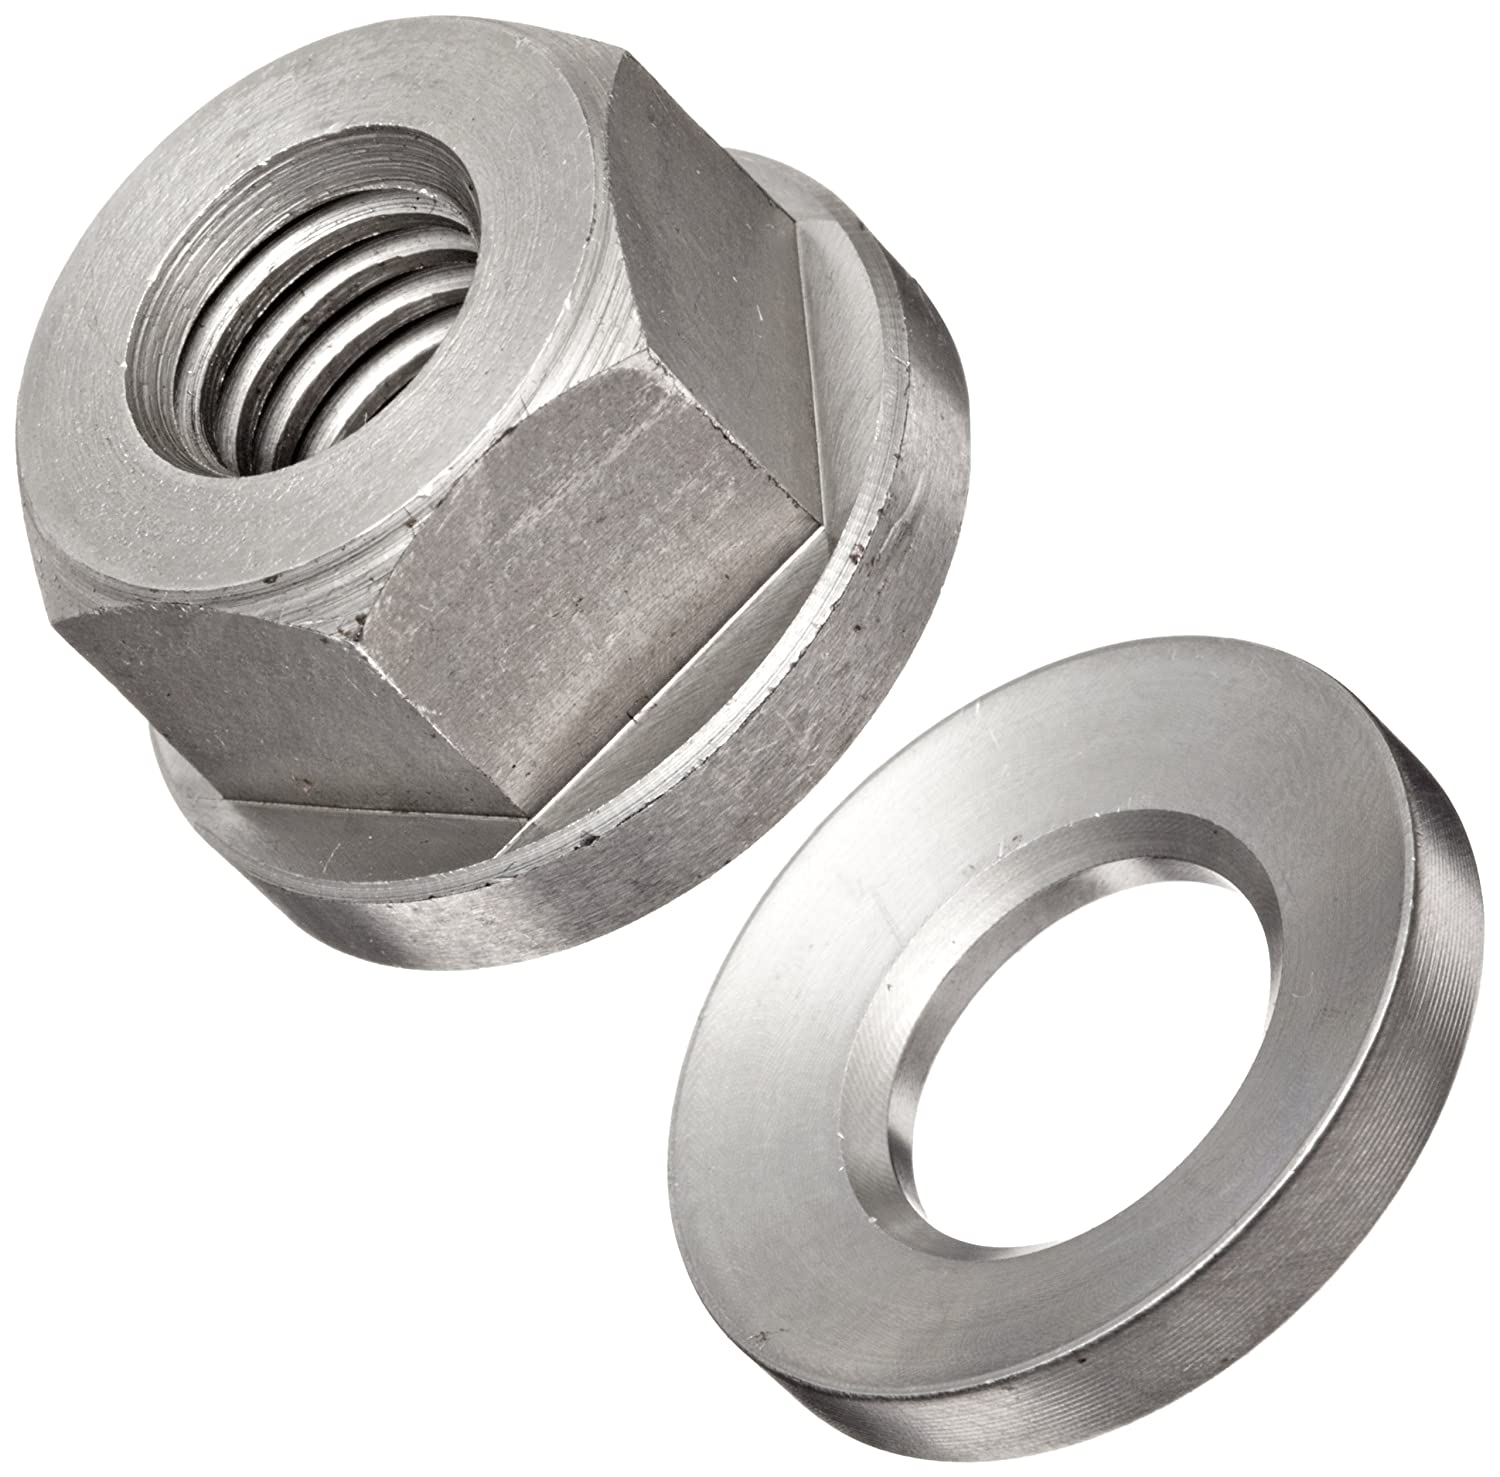 0.040 Height 0.040 Height Antrin Miniature Specialties Inc. Right Hand Threads Class 2B #000-120 Threads Pack of 25 303 Stainless Steel Hex Nut Made in US Plain Finish